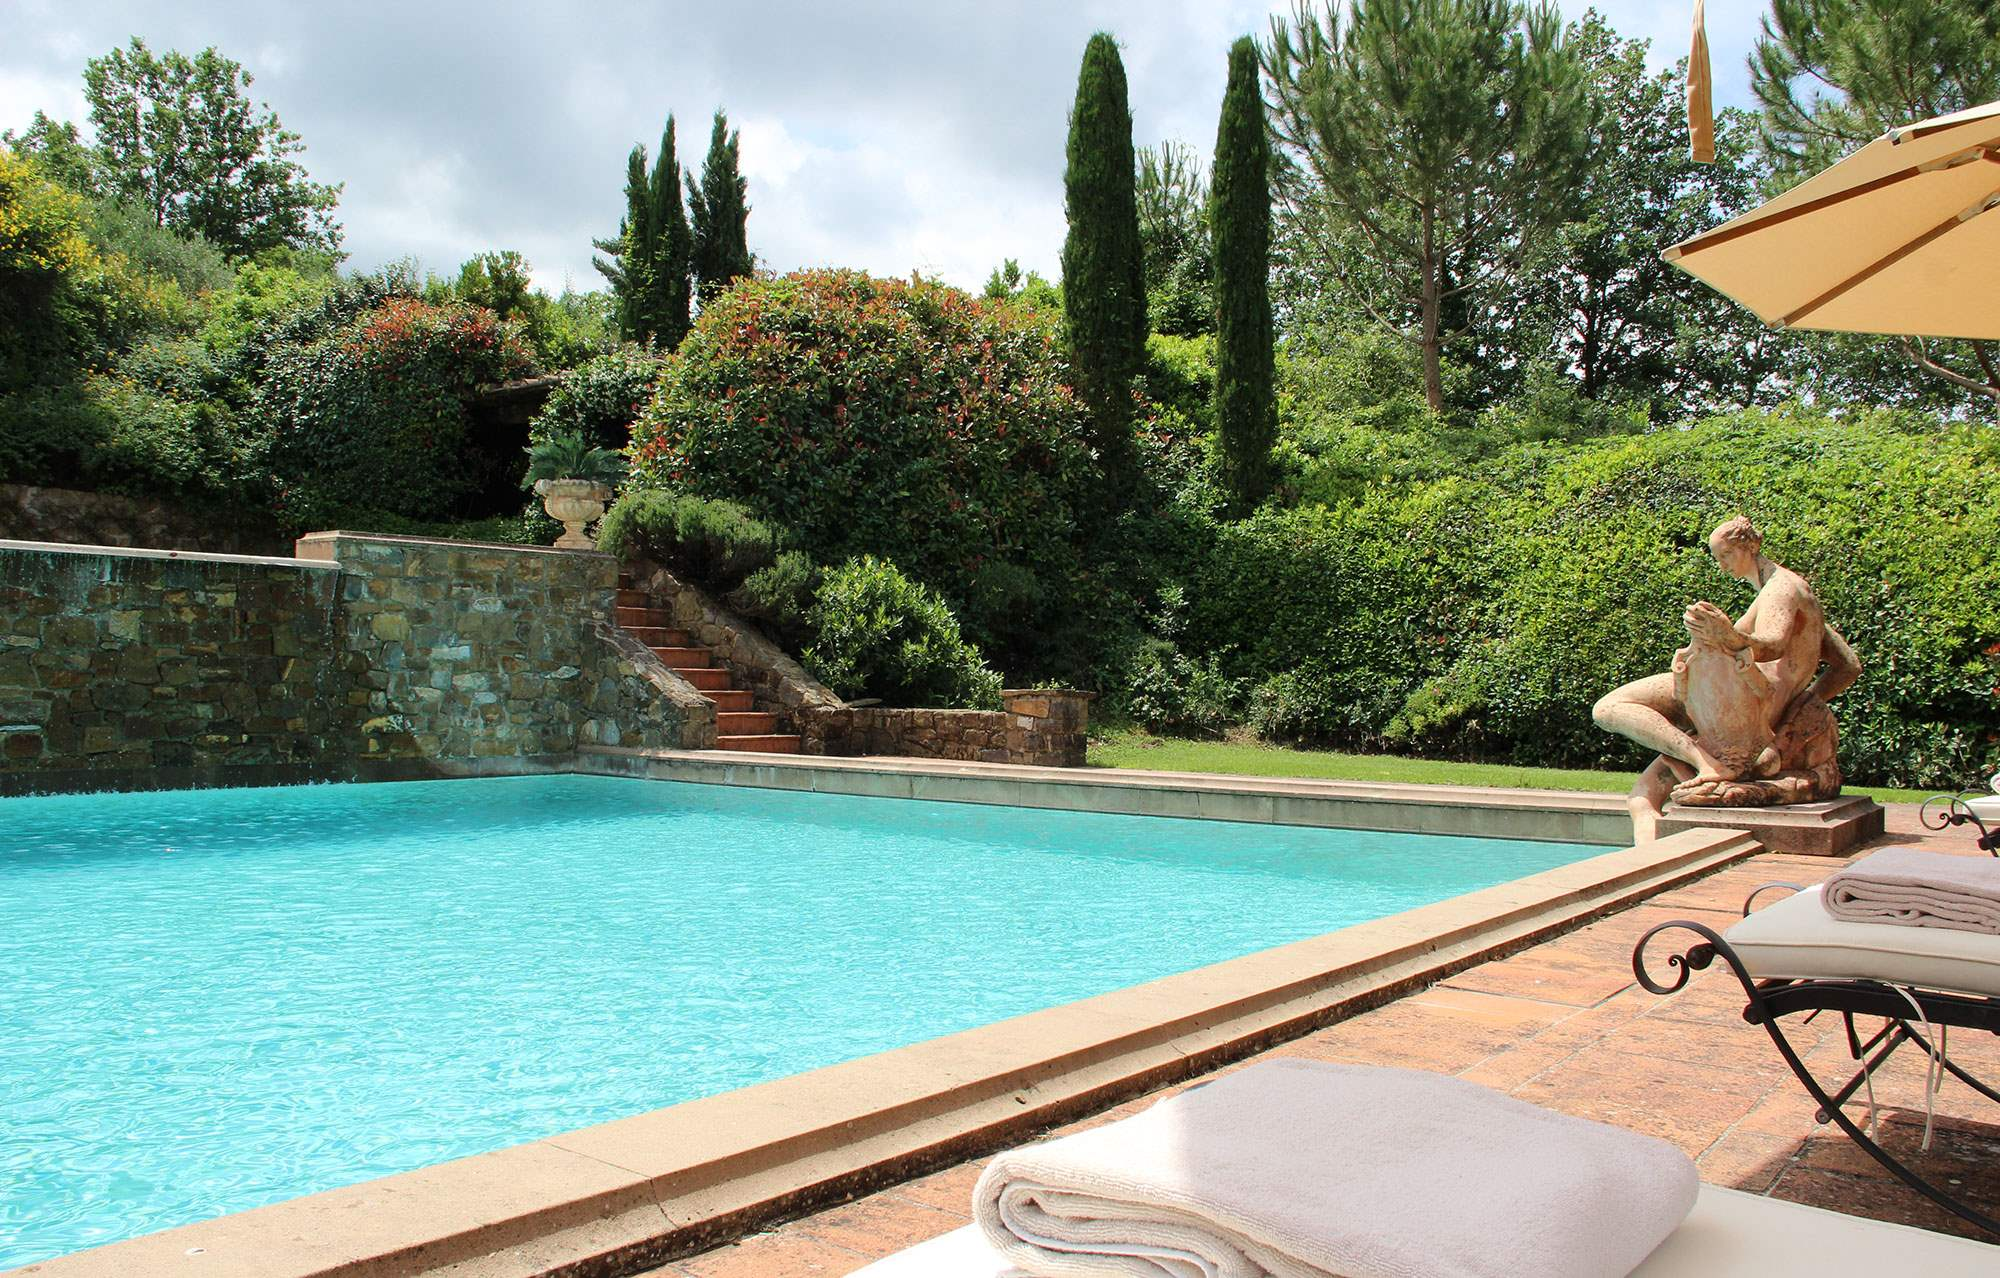 Villa Tuscan, 6 (+2), 3 bedroom villa in Chianti & Countryside, Tuscany Photo #16